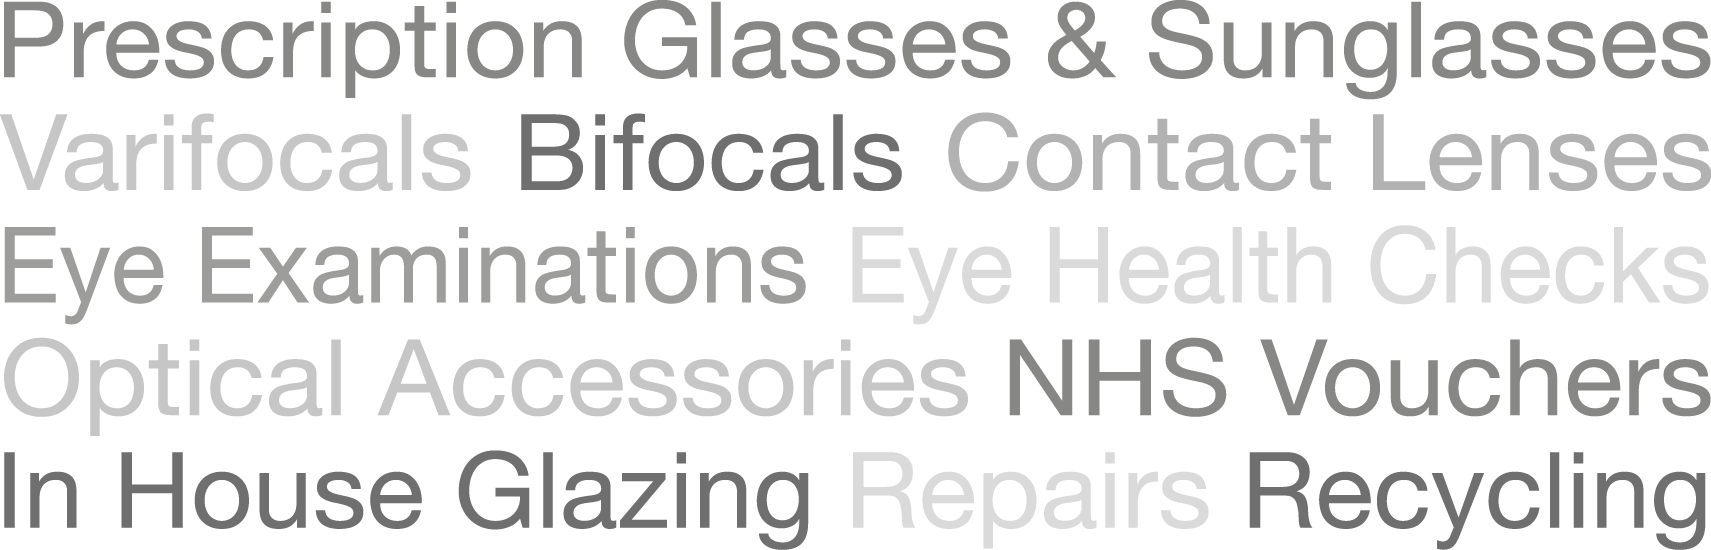 Prescription Glasses & Sunglasses 12 St Thomas Street Varifocals Bifocals Contact Lenses Eye Examinations Eye Health Checks Optical Accessories NHS Vouchers In House Glazing Repairs Recycling